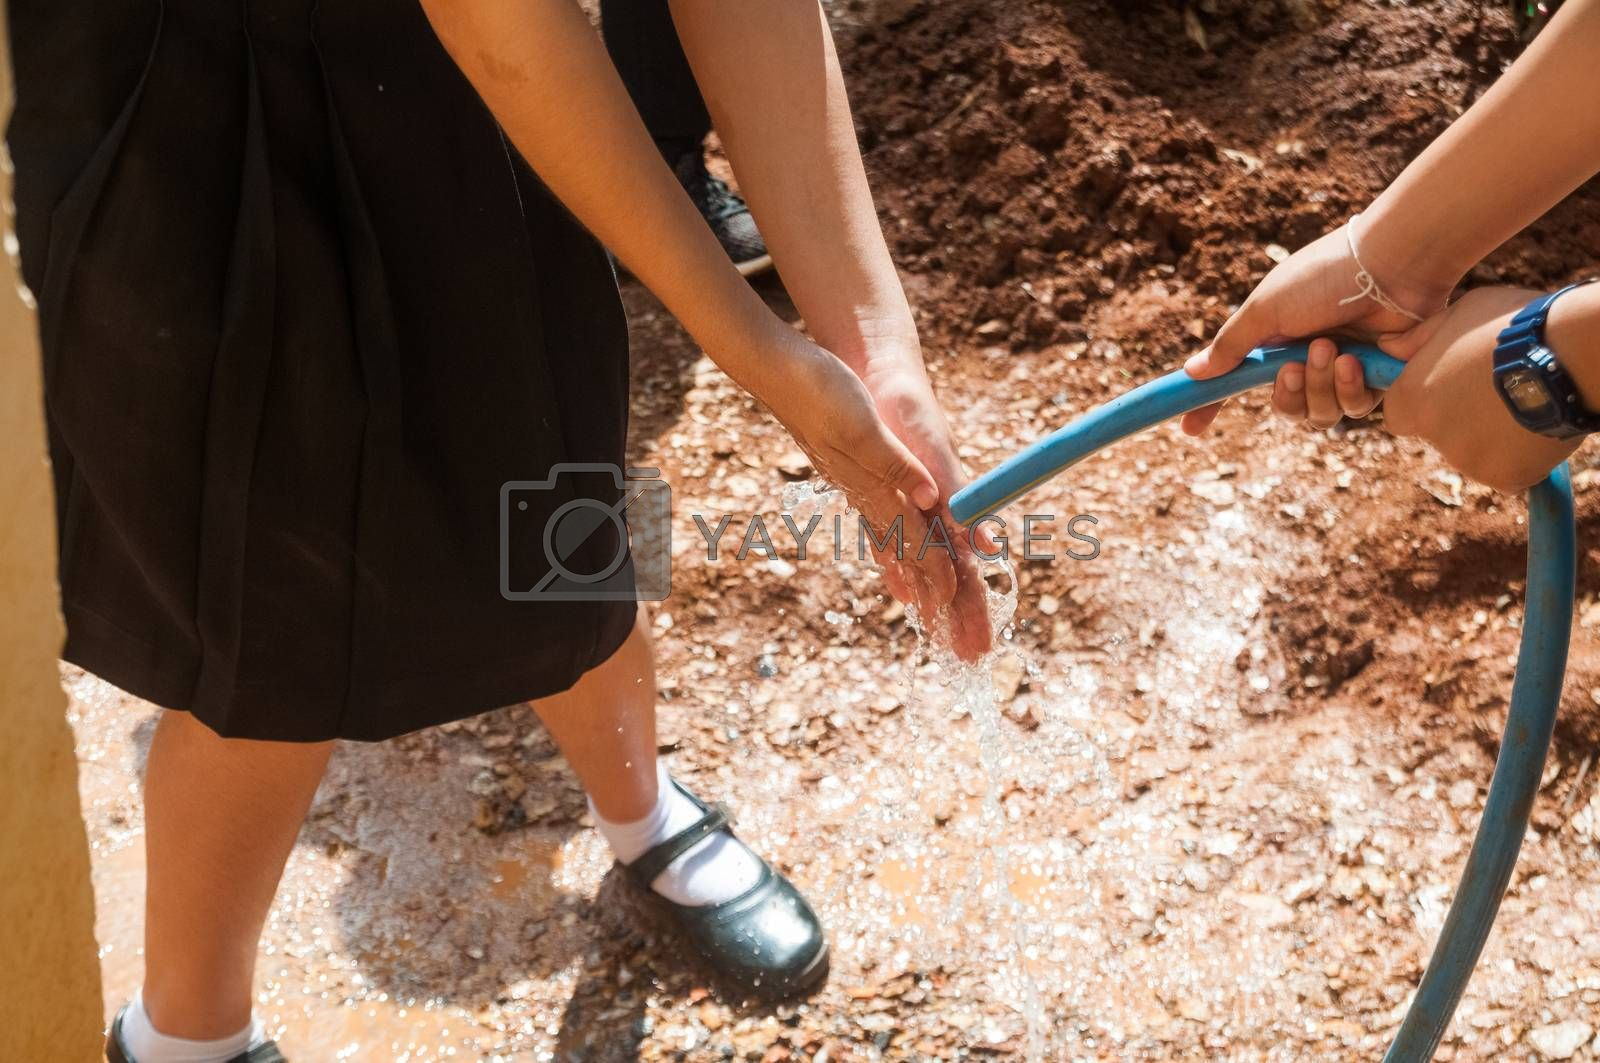 Student holding garden hose spraying fresh water from rubber tube to wash hands stained after plant a tree as outdoor activity to save environment and earth